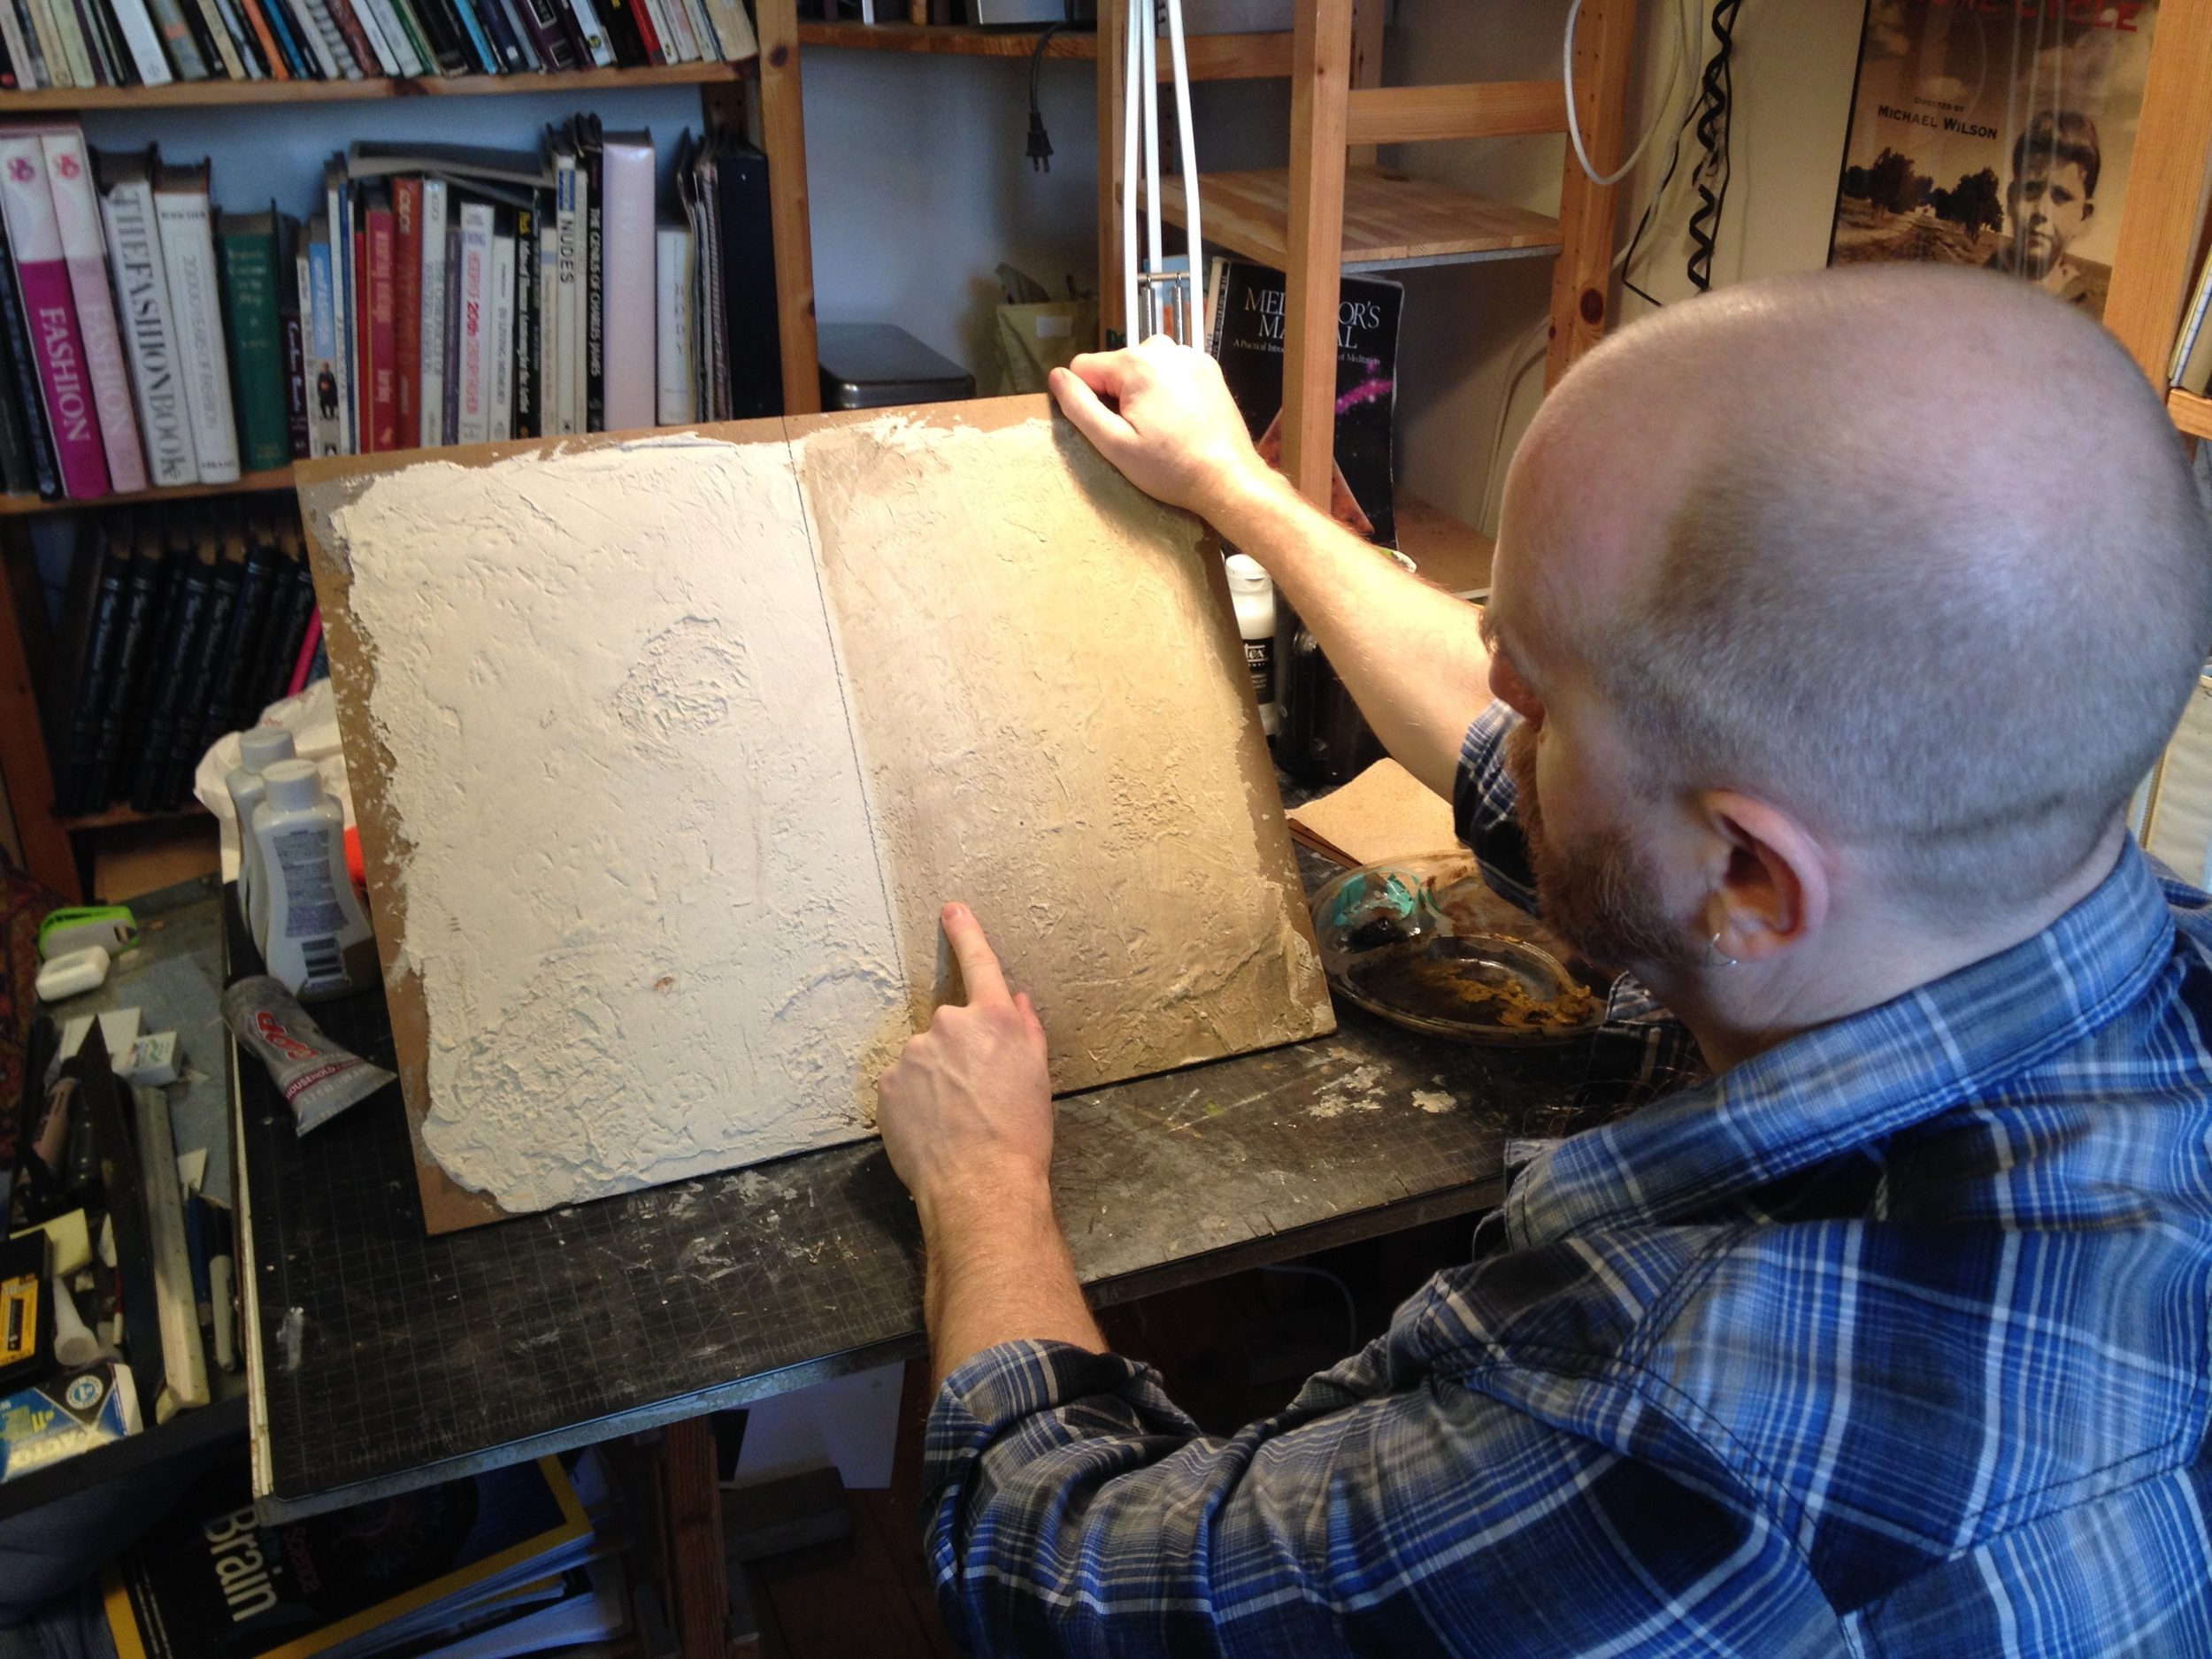 Production Designer David M. Barber goes over various wall treatments in his studio.